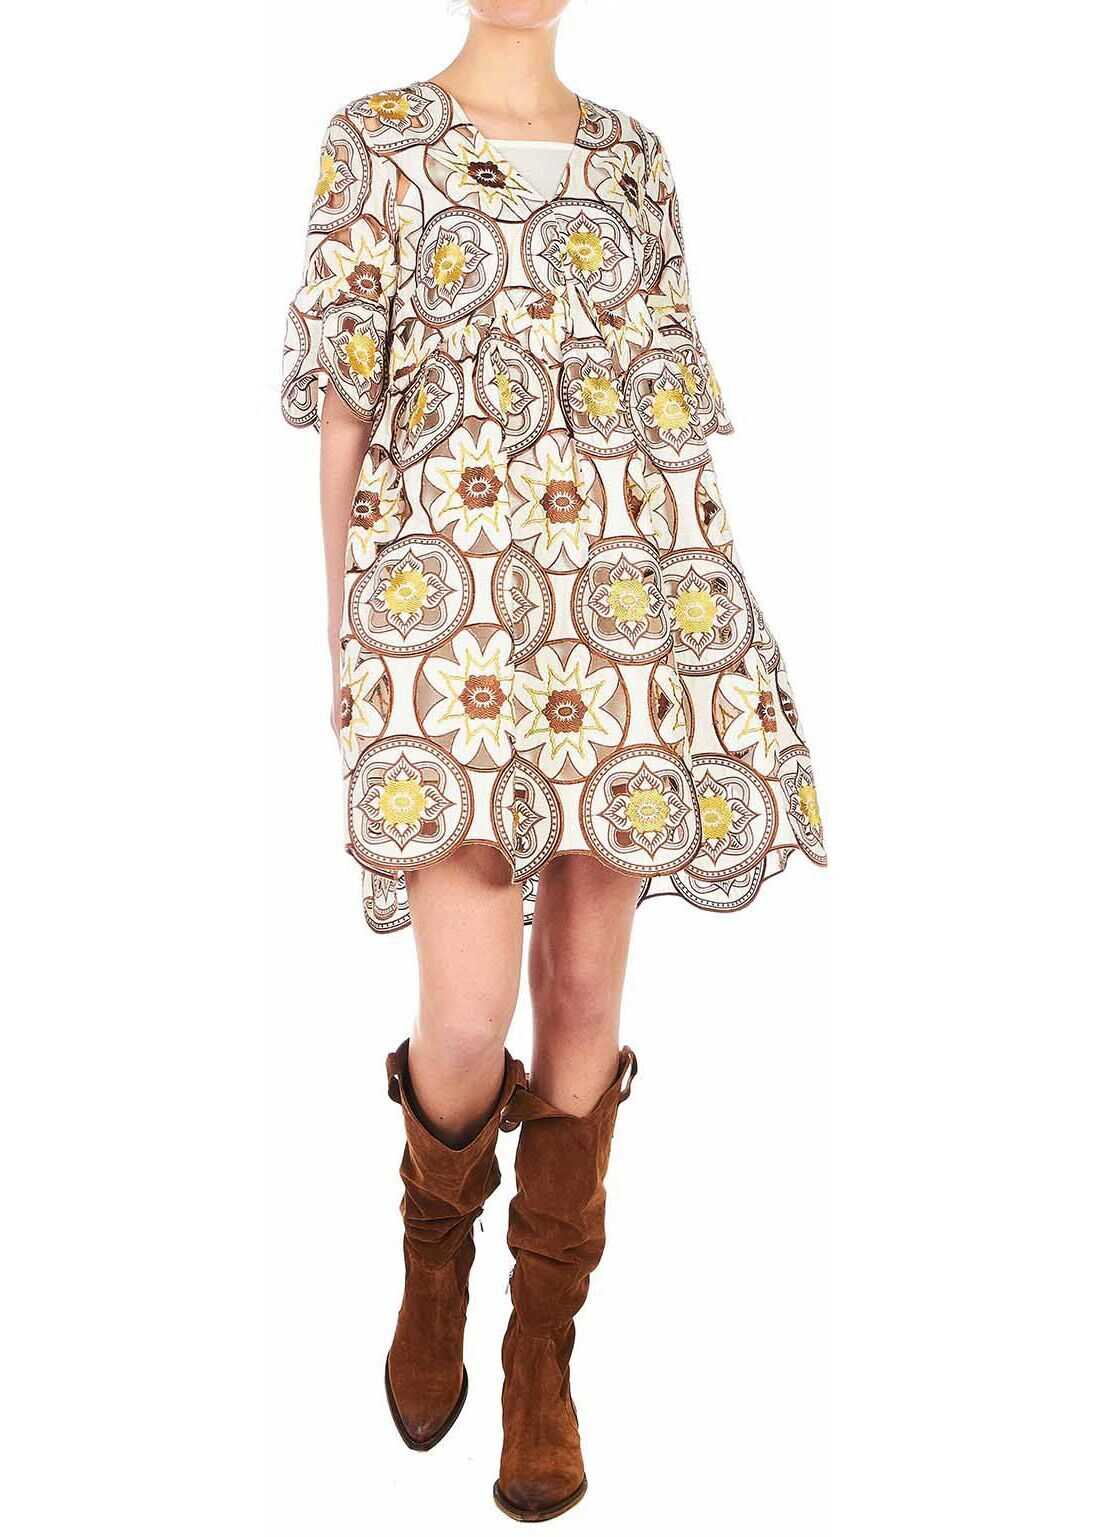 Silvian Heach Floral dress with cut outs